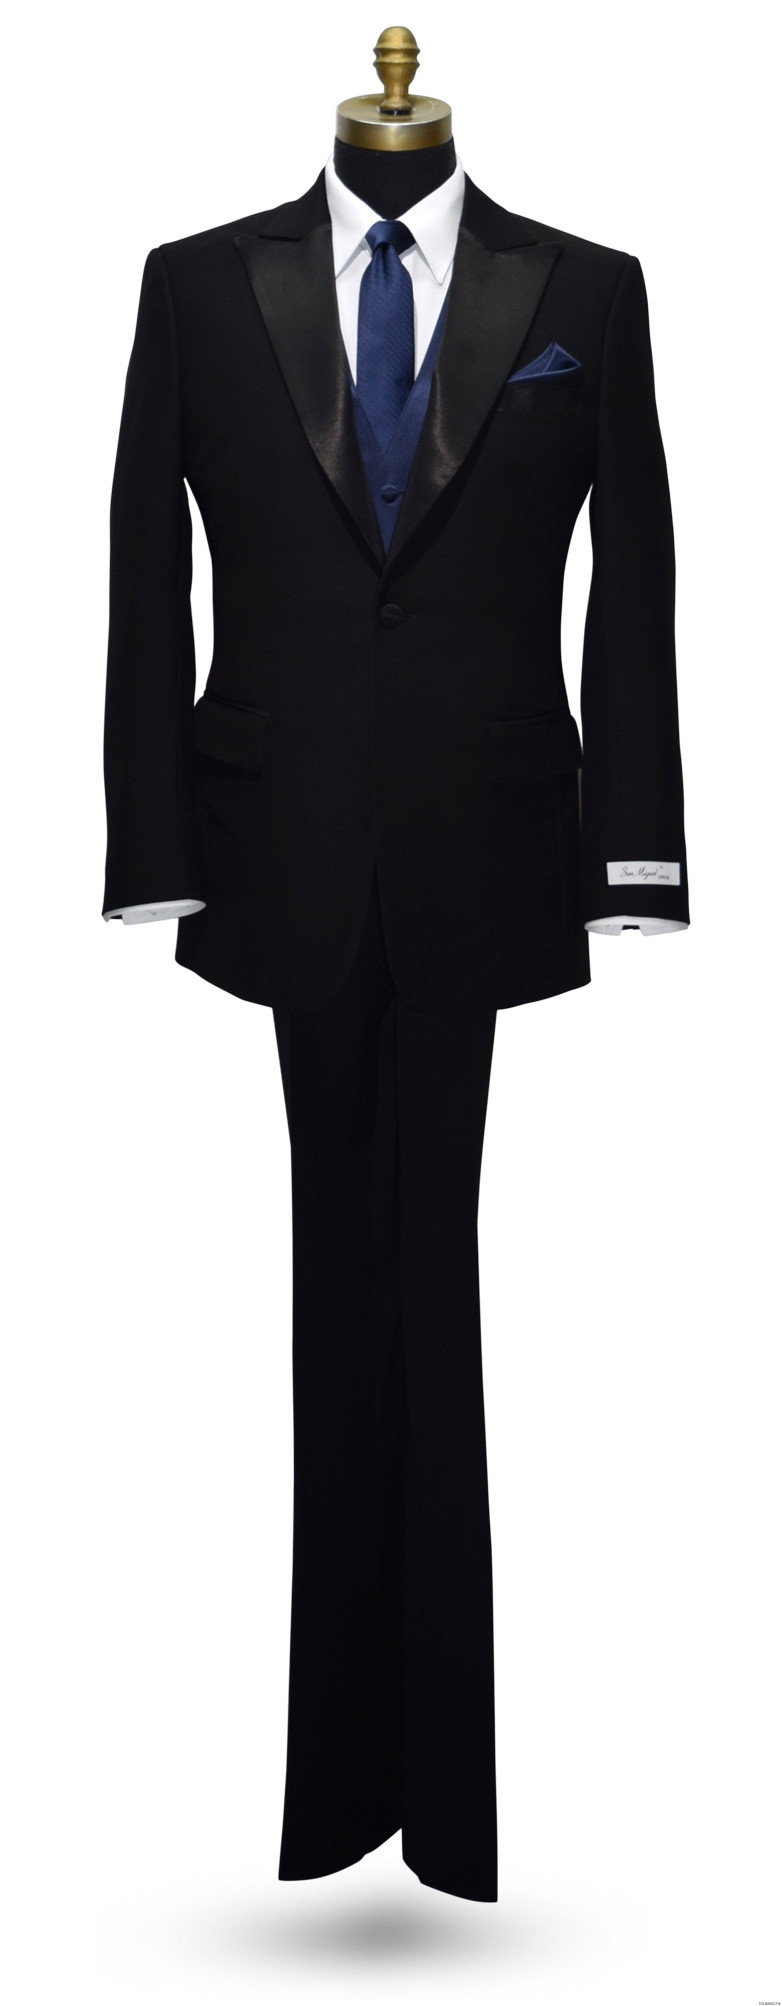 San Miguel black peak lapel tuxedo with navy blue vest and navy blue long tie